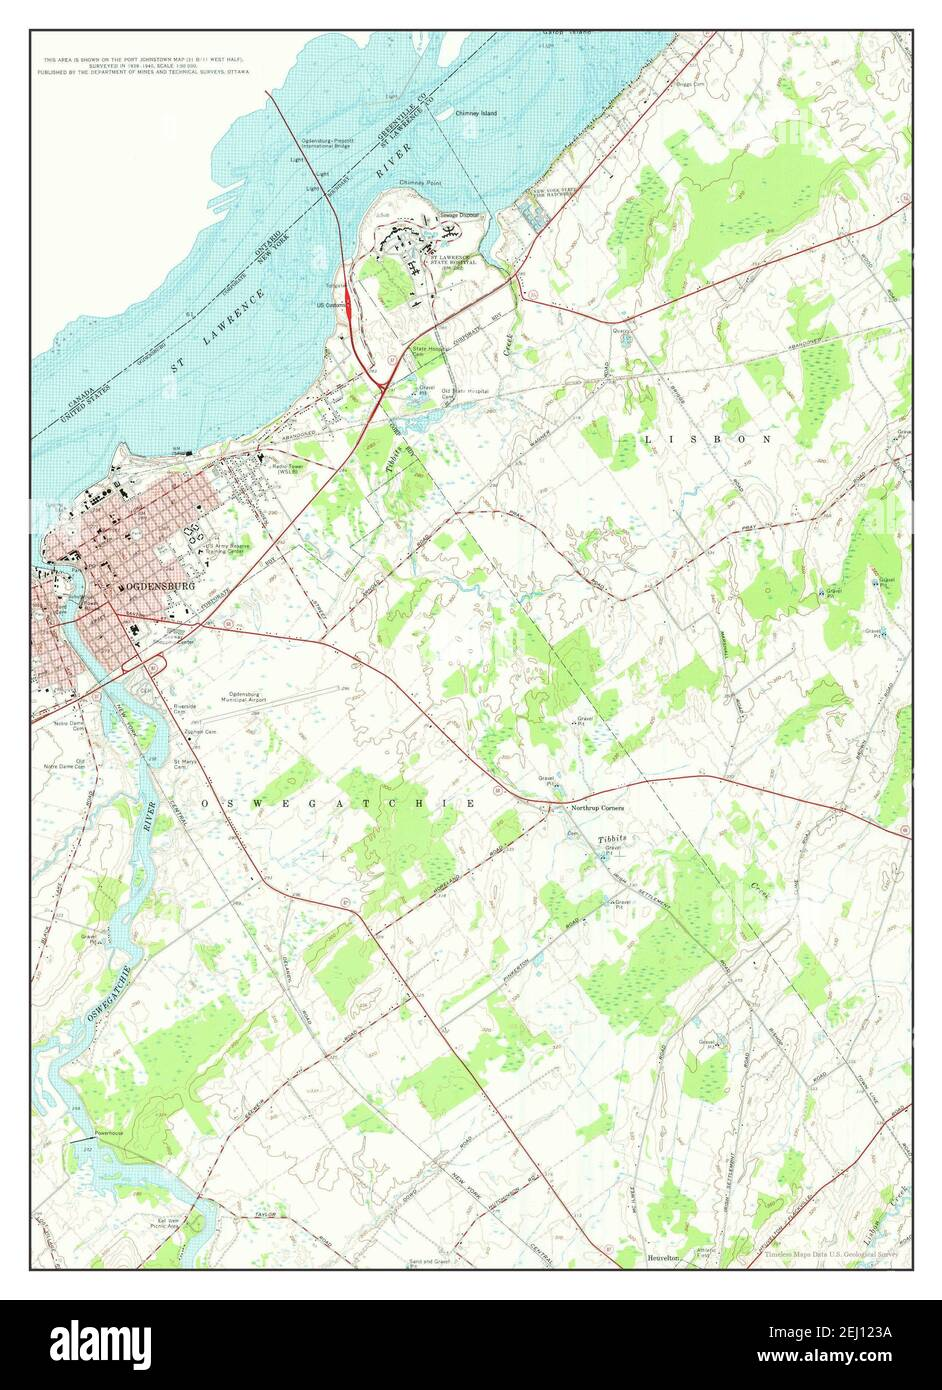 Ogdensburg East, New York, map 1963, 1:24000, United States of America by Timeless Maps, data U.S. Geological Survey Stock Photo